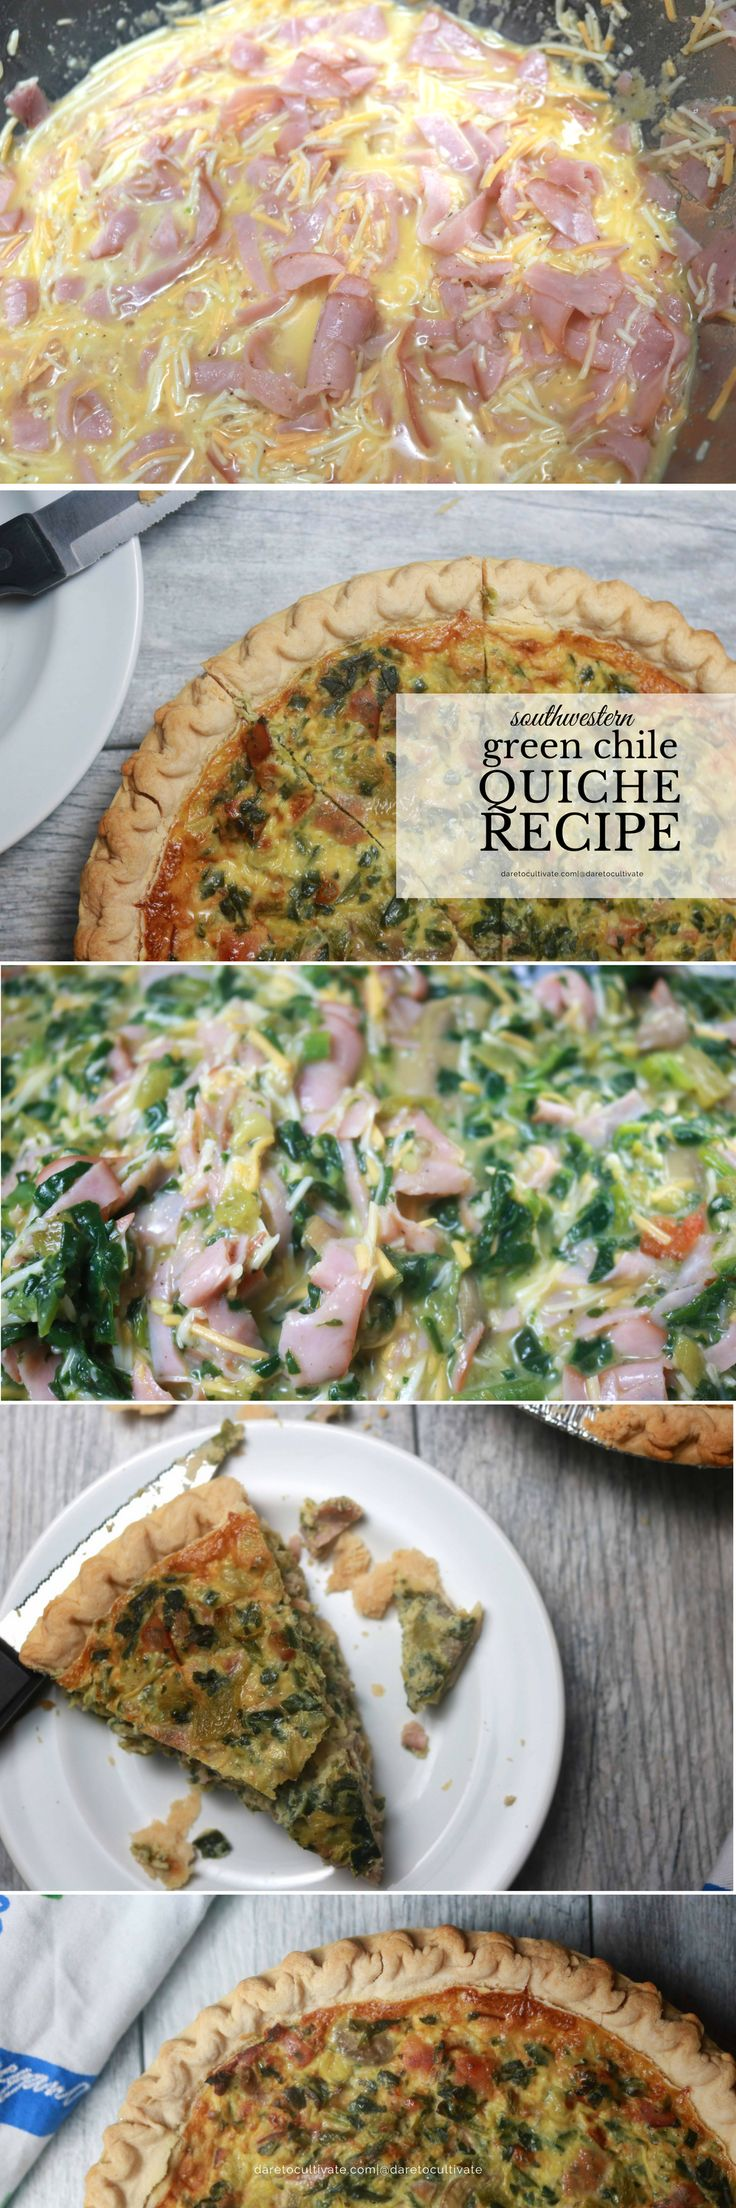 Like this if you're a quiche lover! Easy Quiche Recipe // Spinach Quiche Recipe // Brunch Quiche Recipe // Healthy Quiche Recipe // Ham Quiche Recipe // Healthy Breakfast Recipes // Breakfast Quiche Recipe // Cheese Quiche Recipe // Best Quiche Recipe // Simple Quiche Recipe // Make Ahead Quiche Recipe // Breakfast Recipes For a Crowd // Chicken Quiche Recipe // Mushroom Quiche Recipe // Deep Dish Quiche Recipe // Basic Quiche Recipe // Breakfast Recipes Easy // Make Ahead Breakfast Recipes…